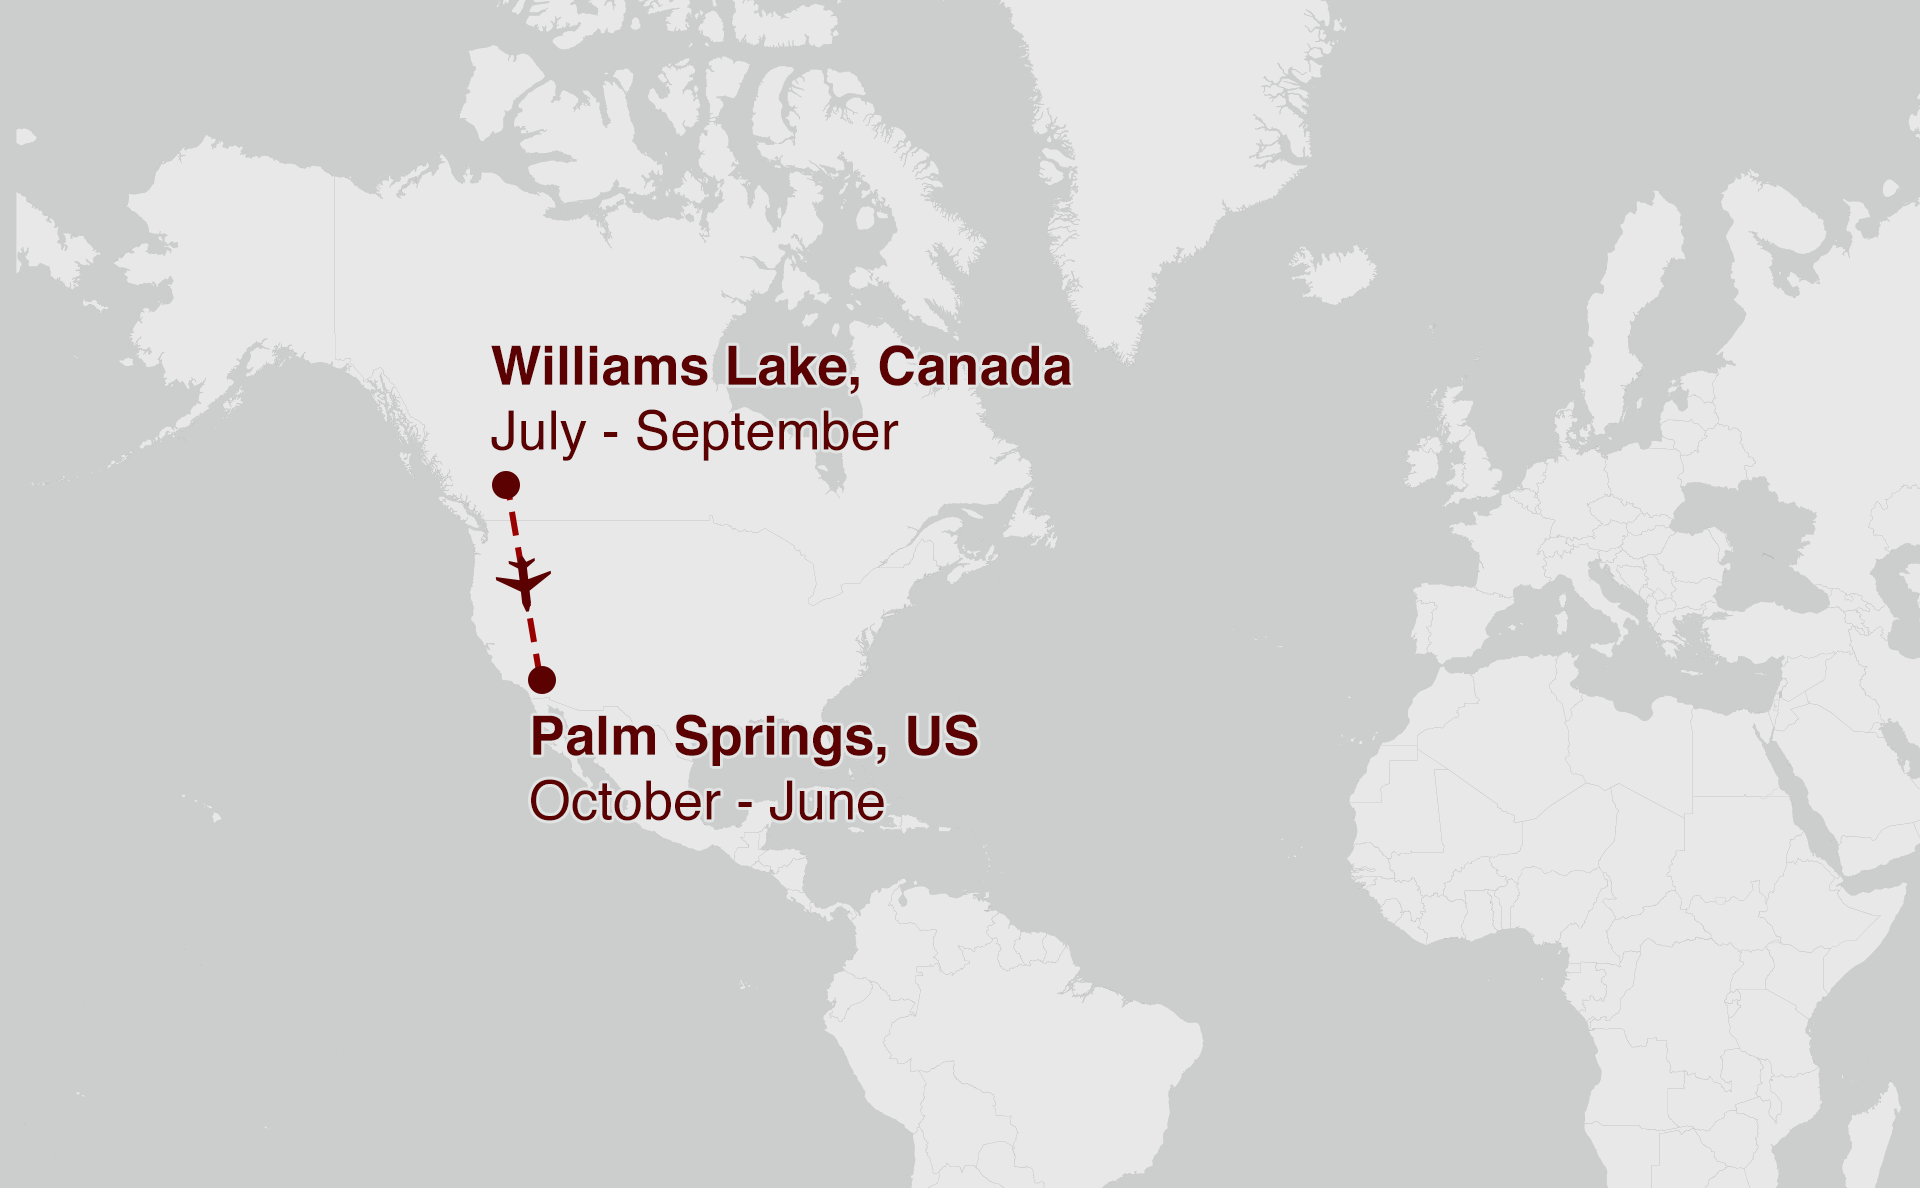 Map showing Palm Springs to Williams Lake